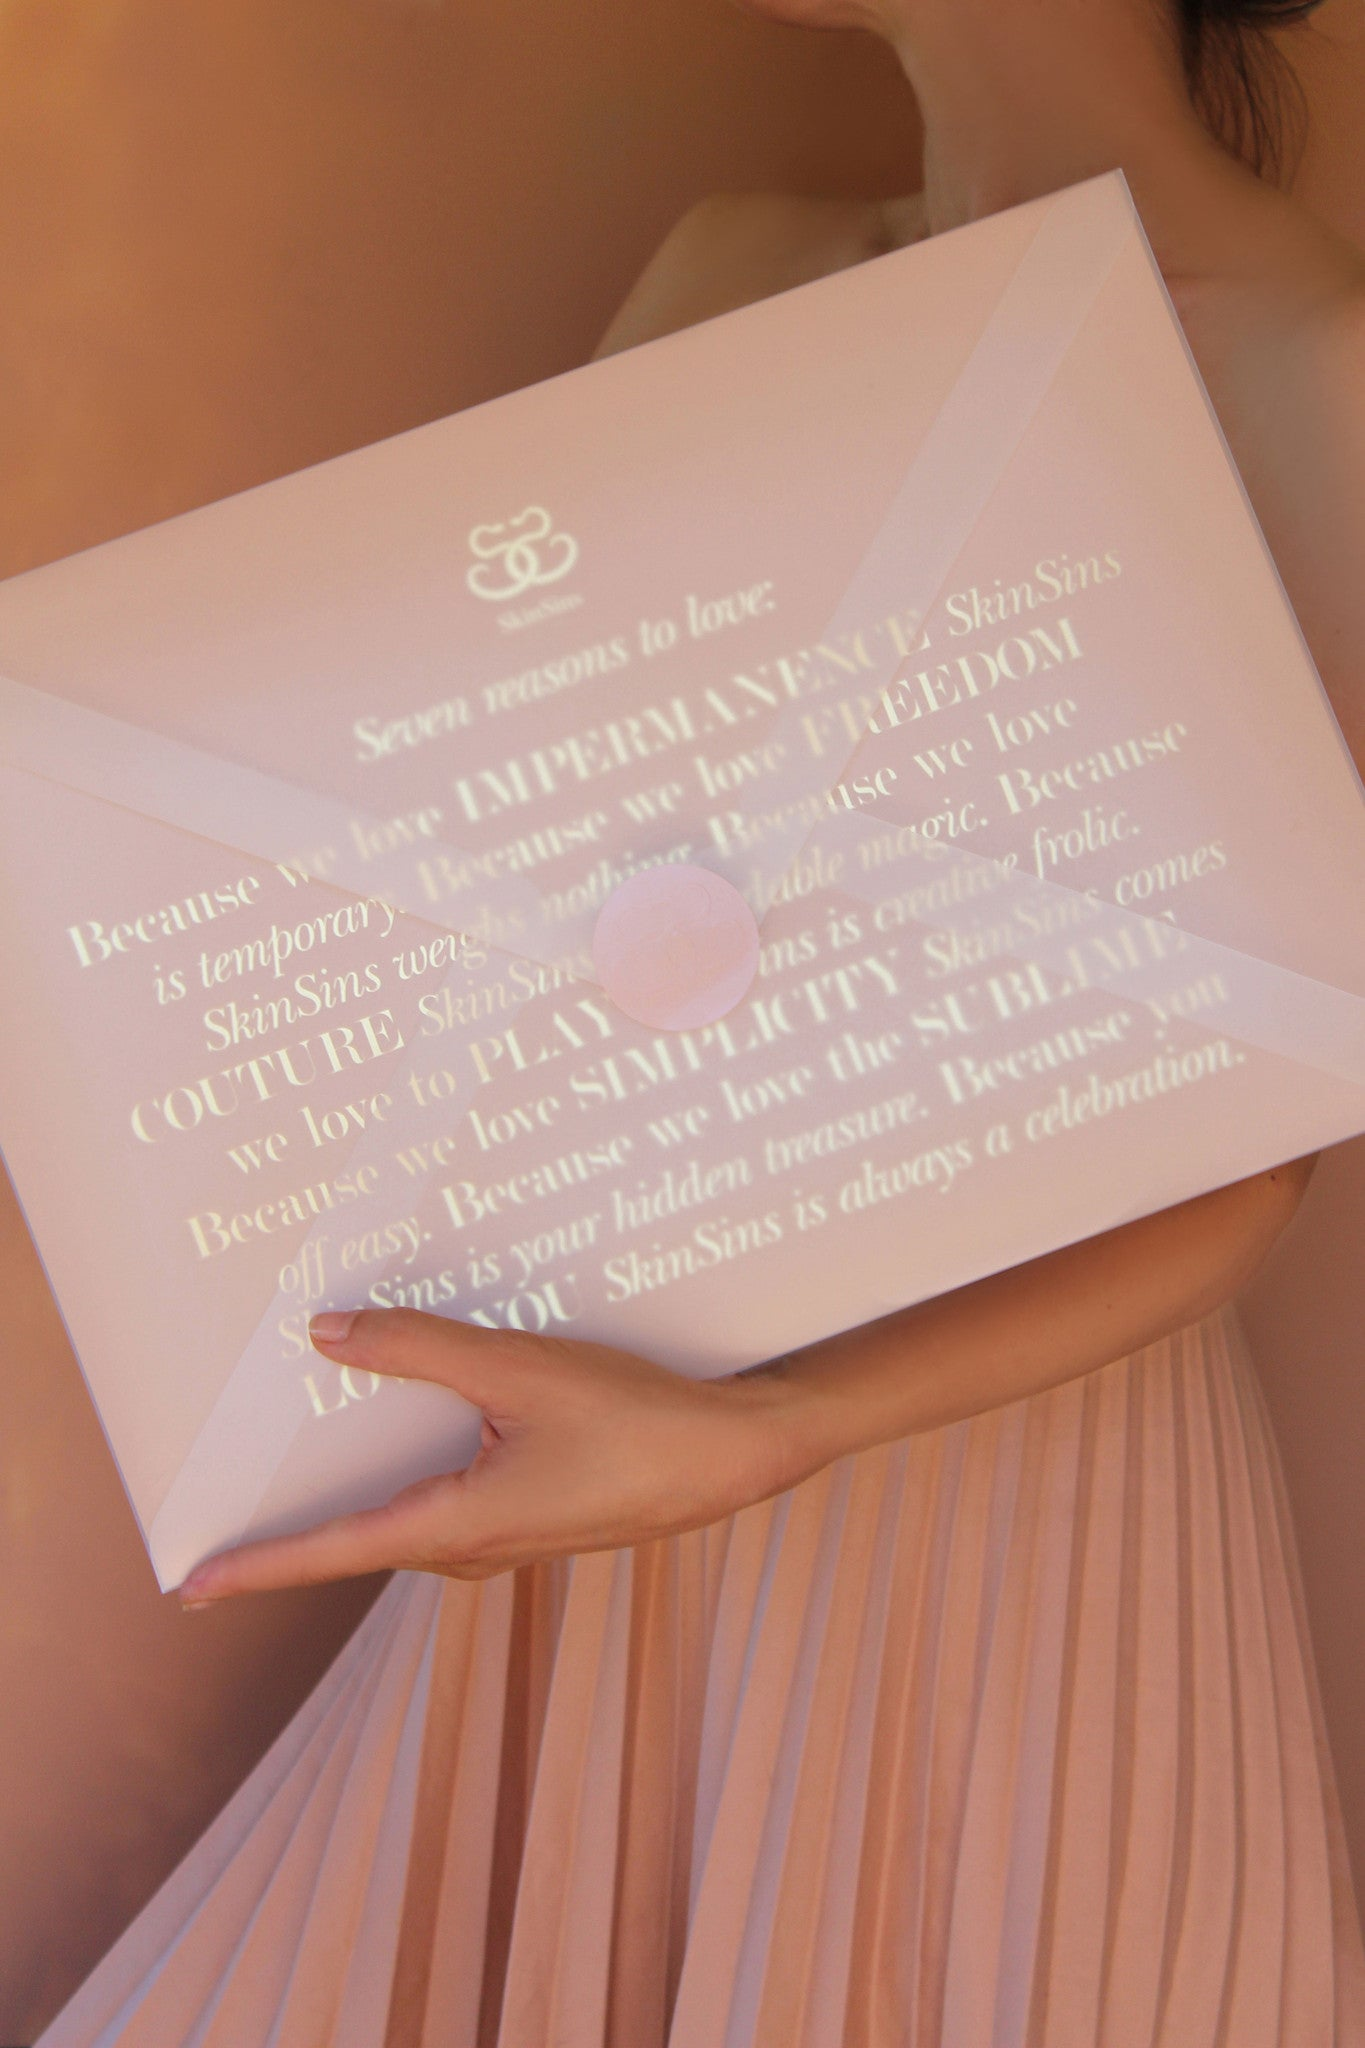 Oversized envelope packaging design by SkinSins in nude pink